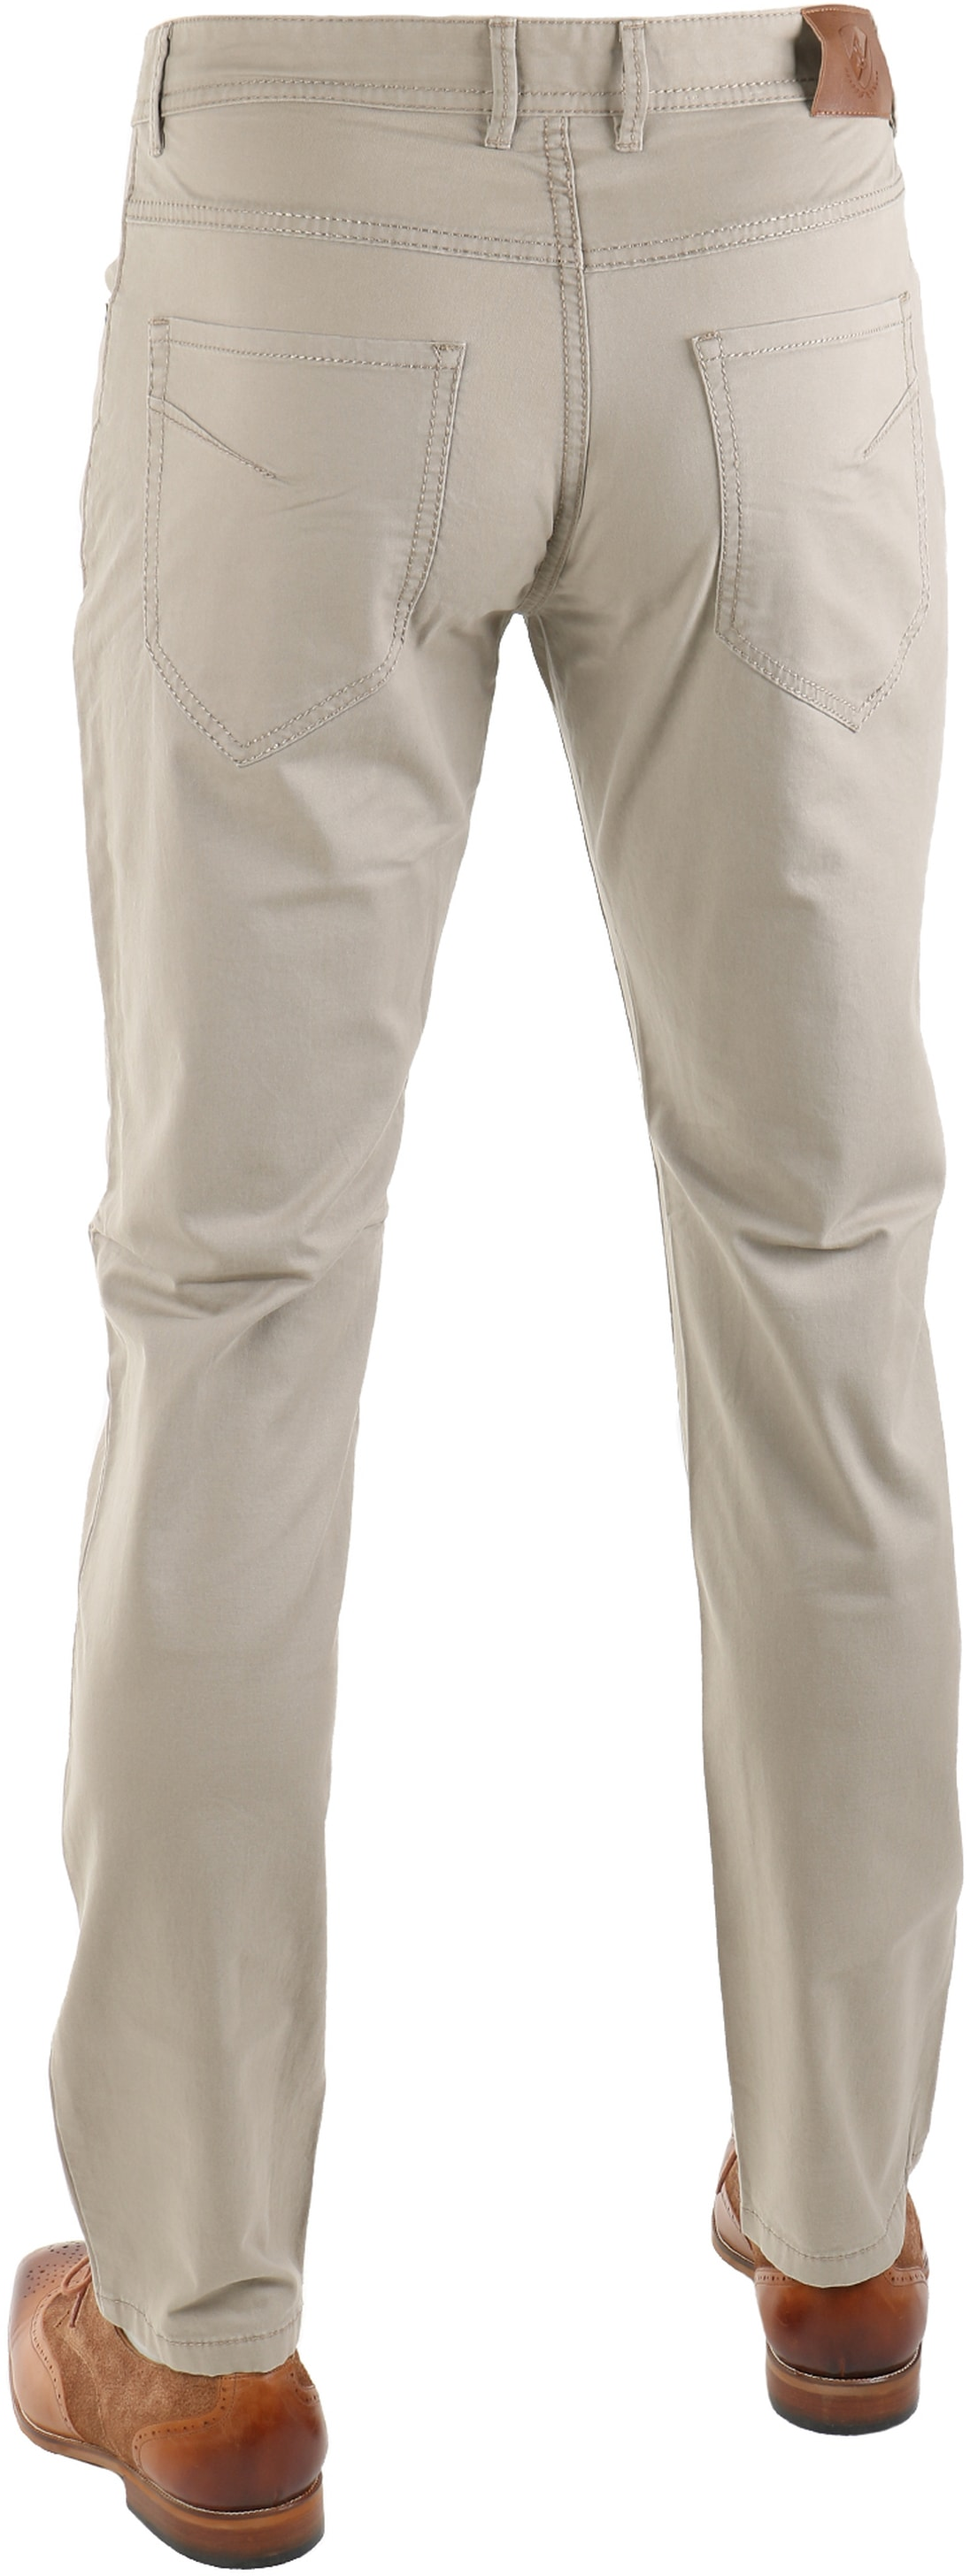 Suitable Barrie Broek Khaki foto 1